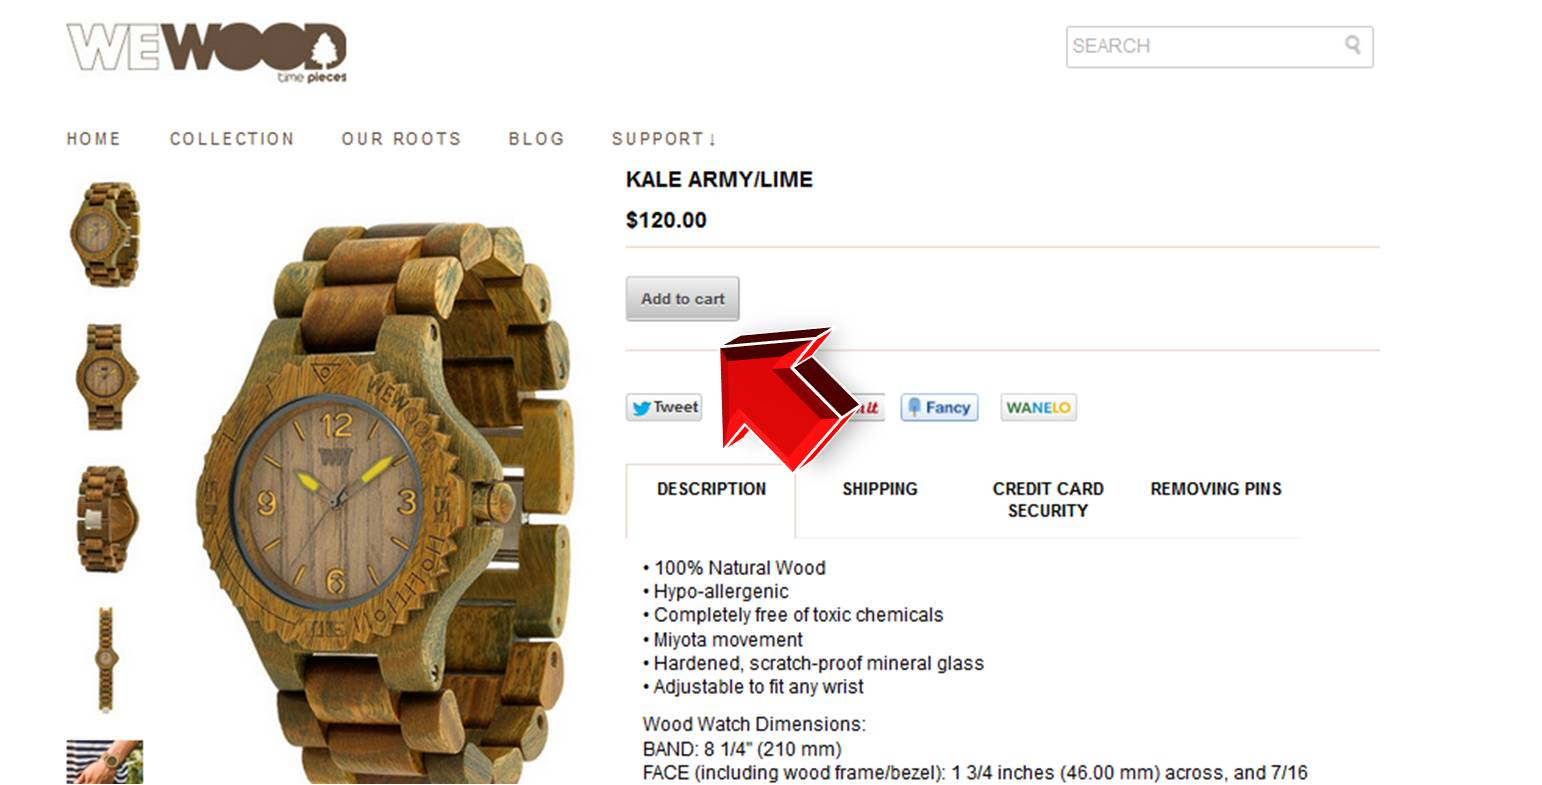 Wewood is a watch brand that manufacturers wooden watches crafted from % natural materials. They offer attractive, unique watches for men, women and unisex. Check the following Wewood promo code, coupon code or coupons to save a little extra and get FREE shipping on your next purchase.